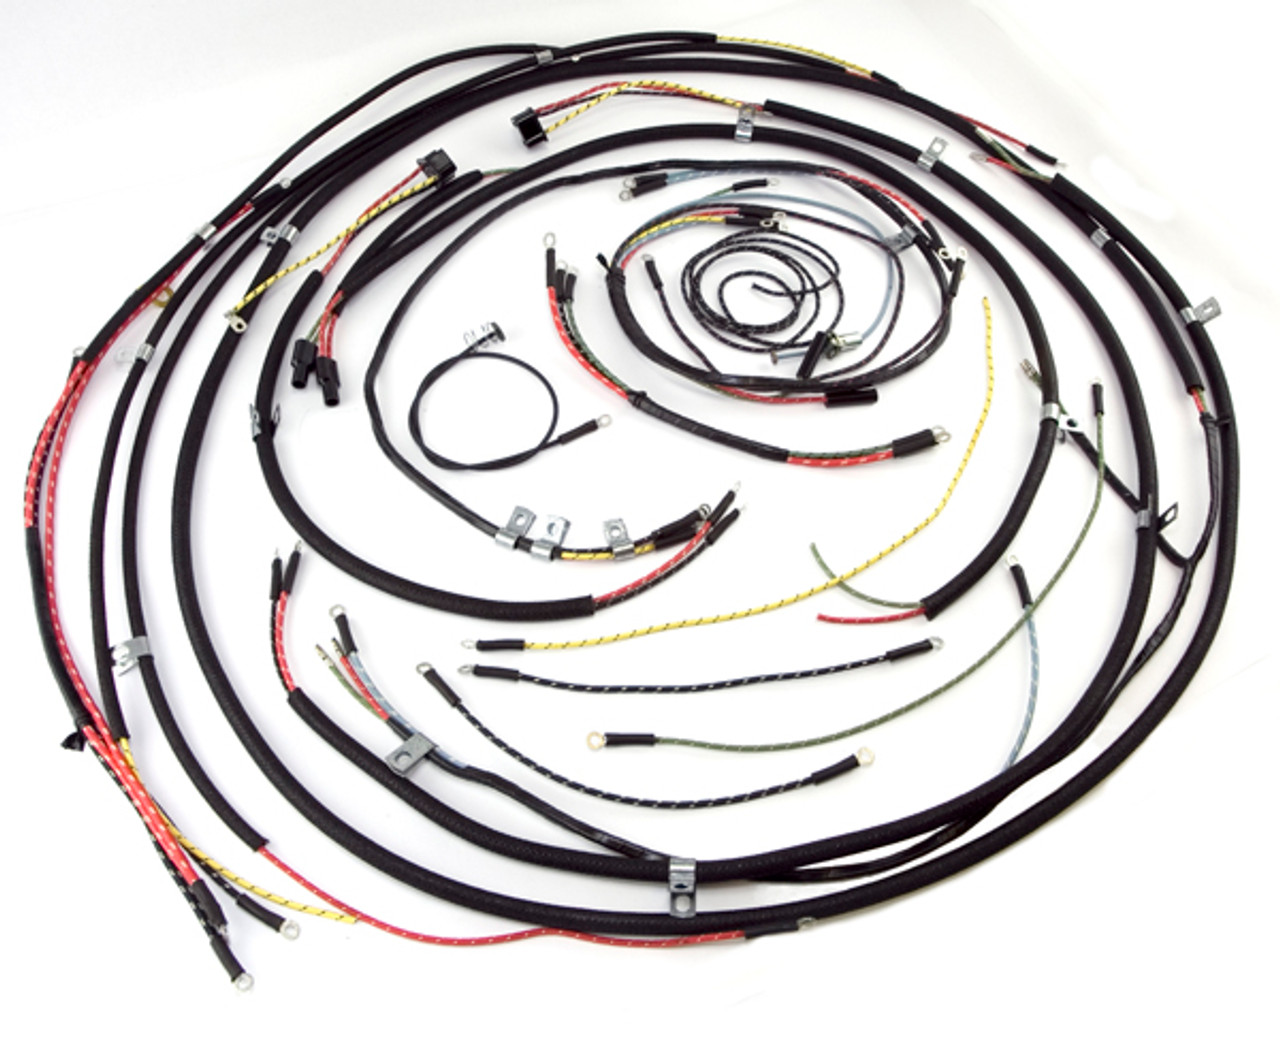 Wiring Harness 45 46 Willys Cj2a 17201 01